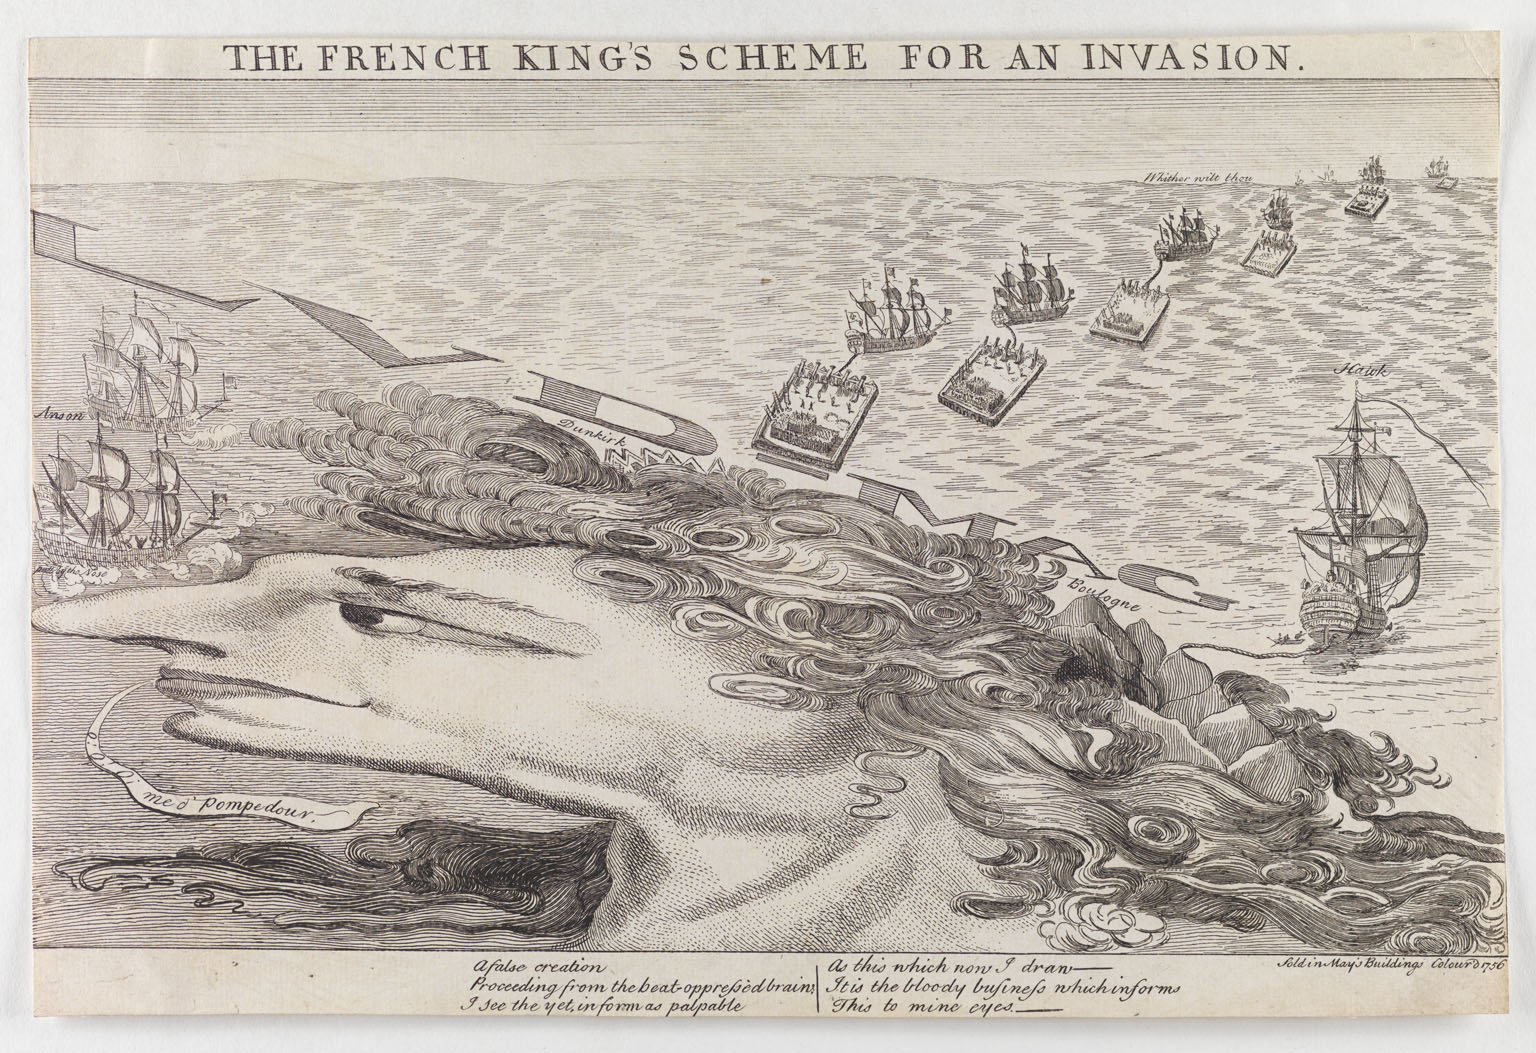 CLICK FOR LARGER IMAGE: The French King's scheme for an invasion